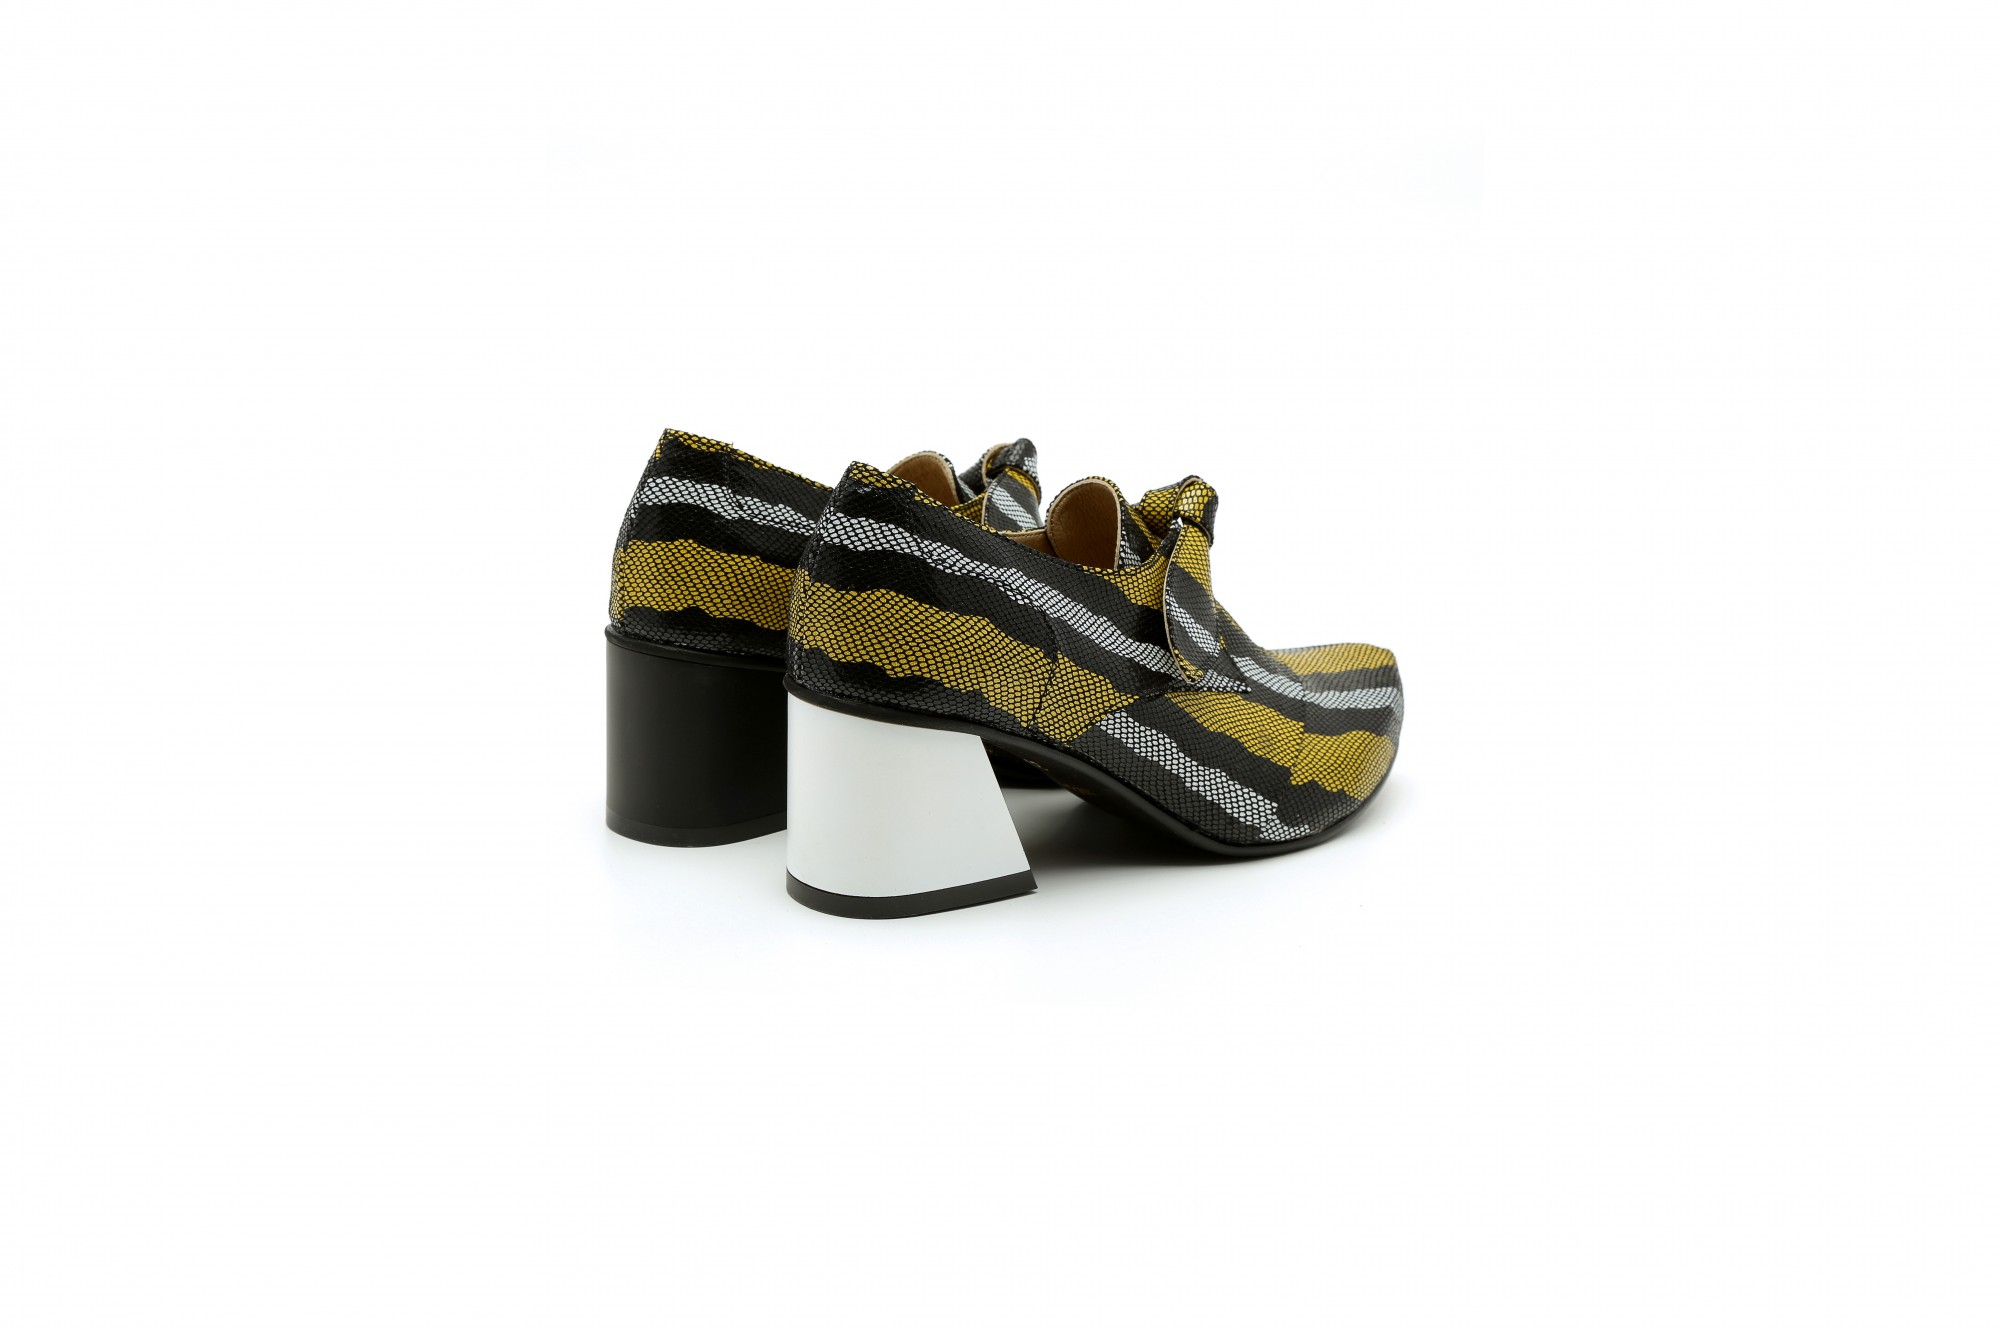 Block heel funky shoes black and yellow